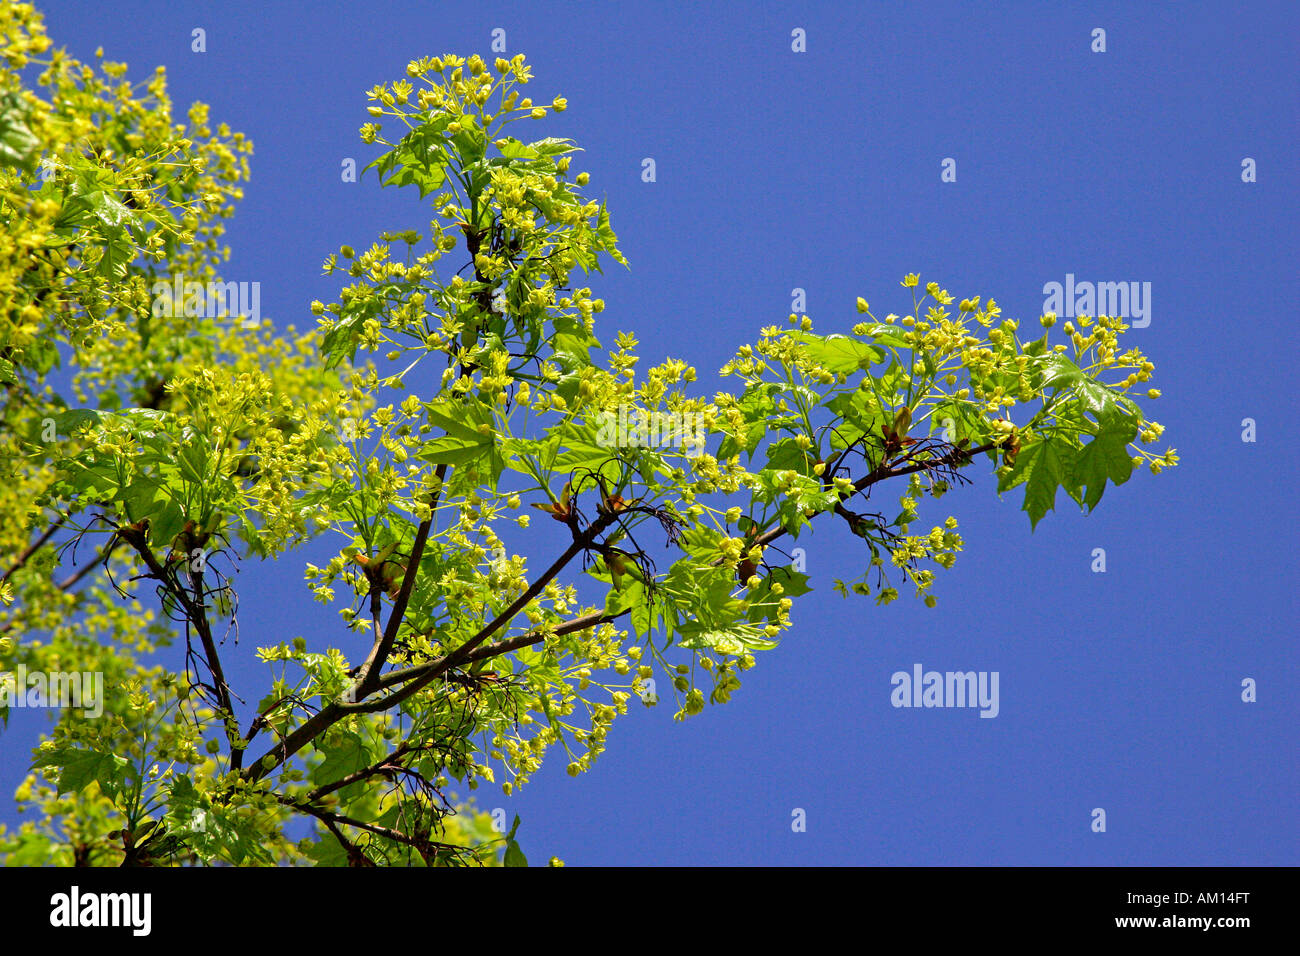 Norway maple - leaves and blossoms in spring (Acer platanoides) Stock Photo